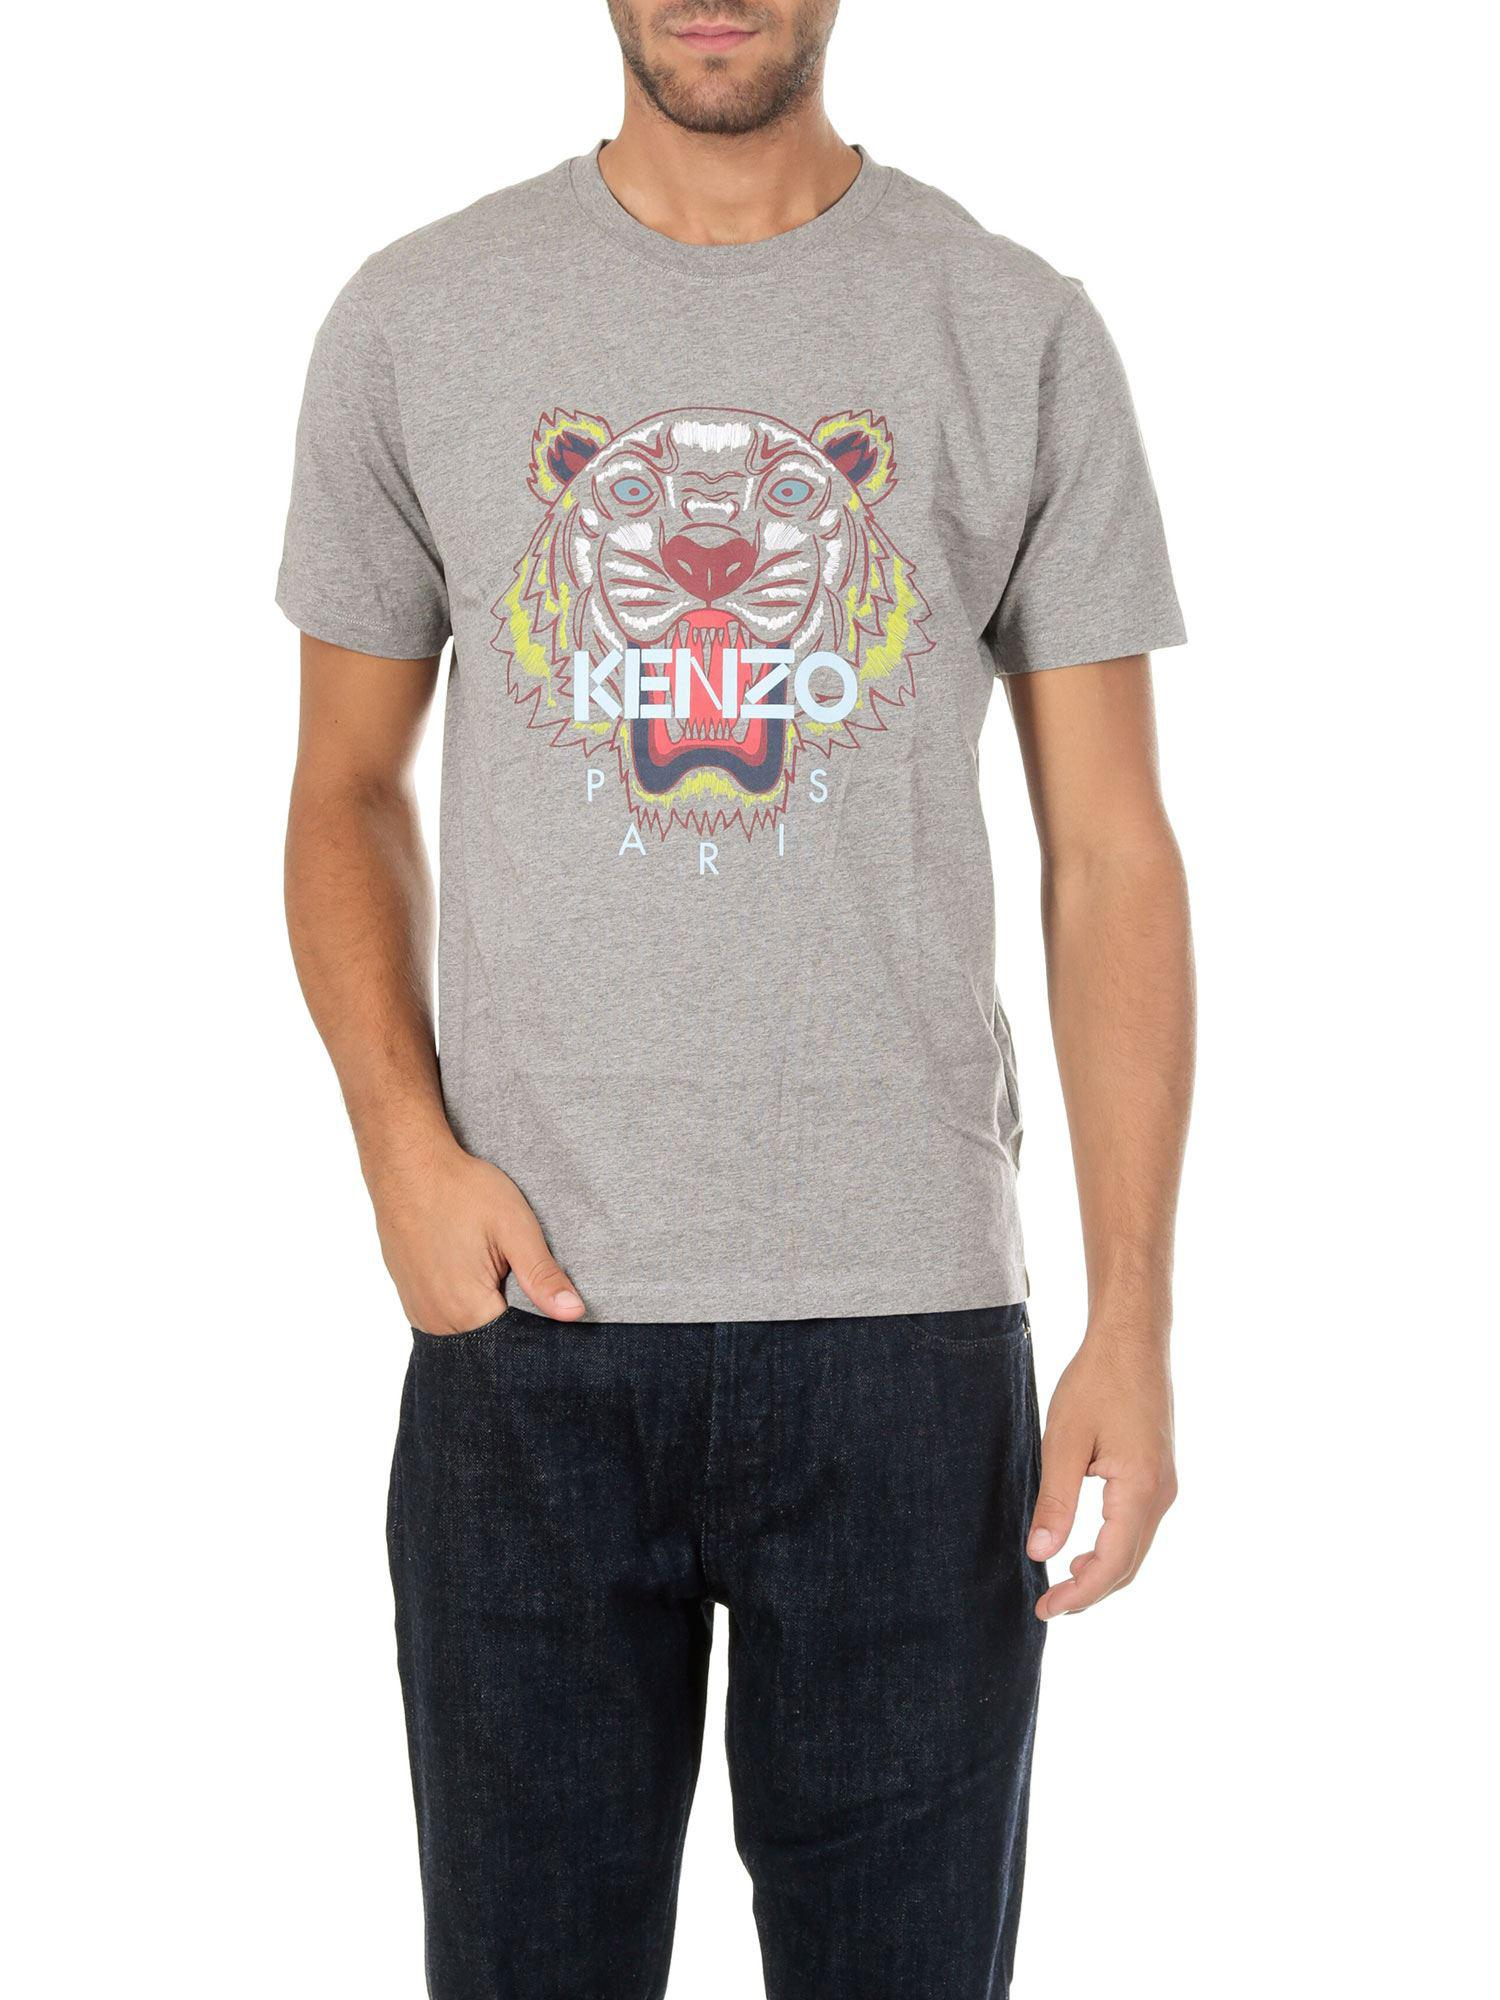 c451129b KENZO Gray Tiger Print T-shirt in Gray for Men - Lyst